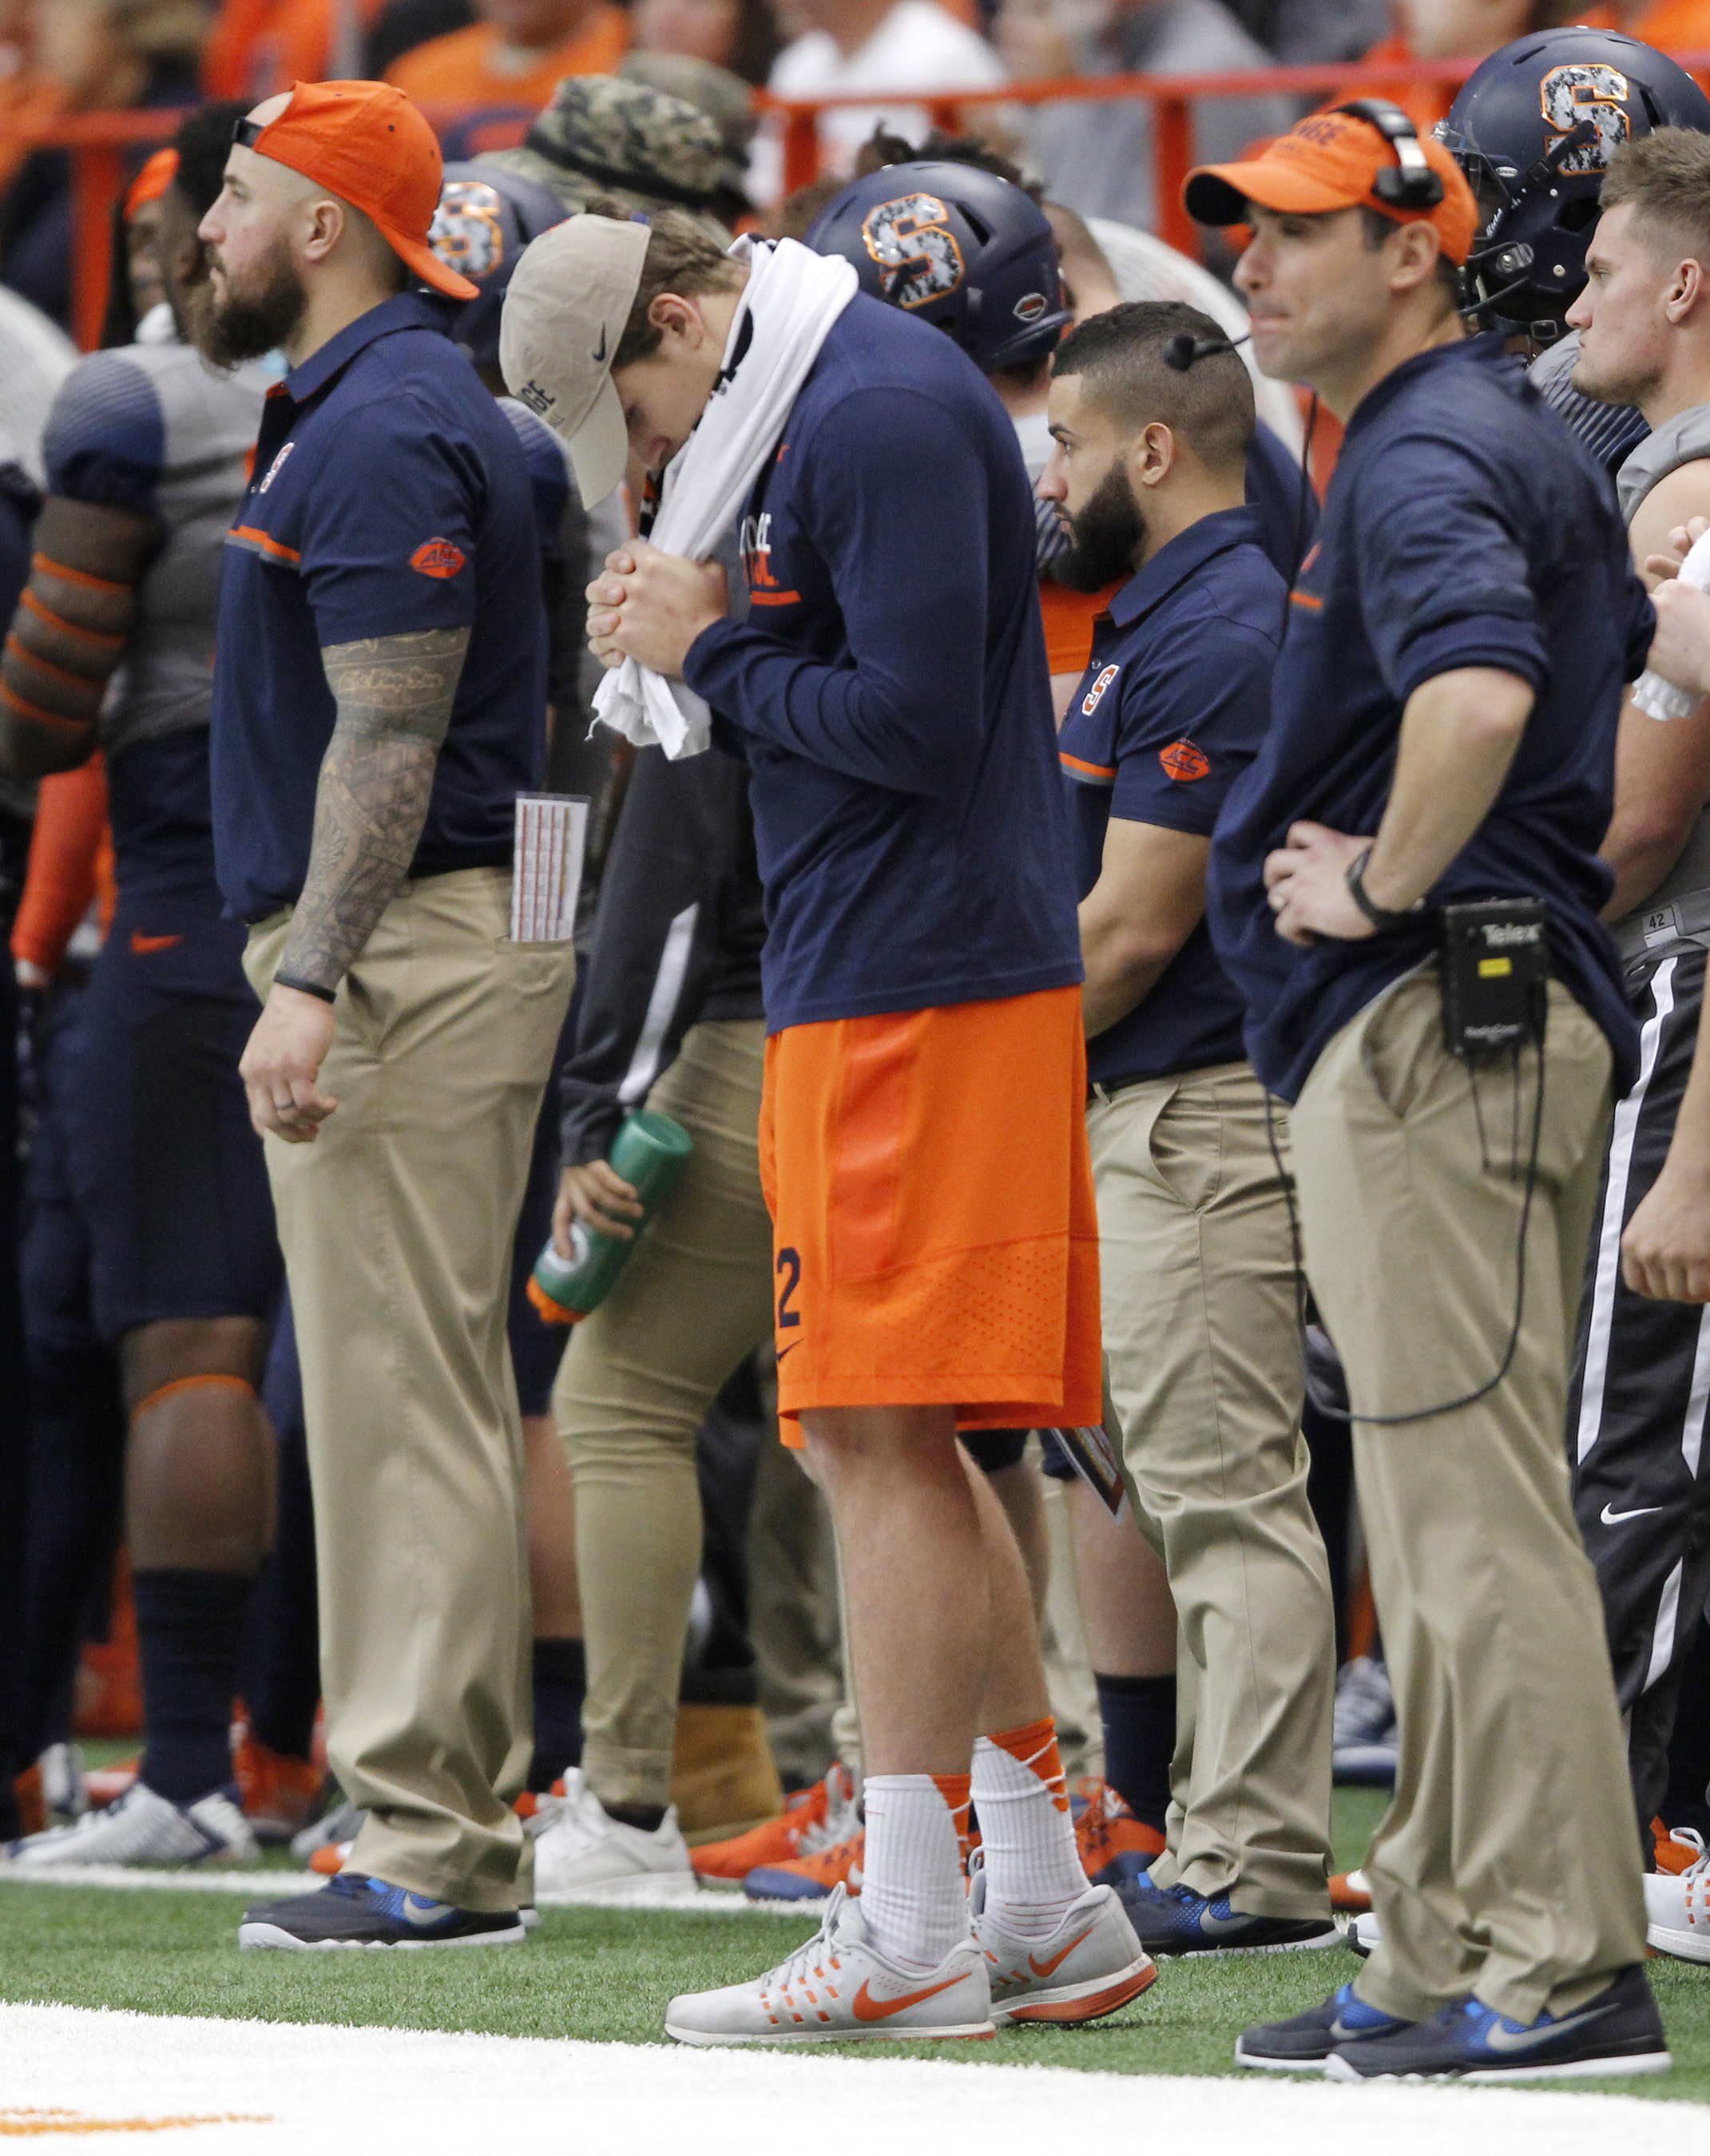 Syracuse's starting quarterback Eric Dungey, center, stands the Syracuse sidelines in the final seconds of an NCAA college football game against North Carolina State in Syracuse, N.Y., Saturday, Nov. 12, 2016. Dungey could not play because of an injury. N